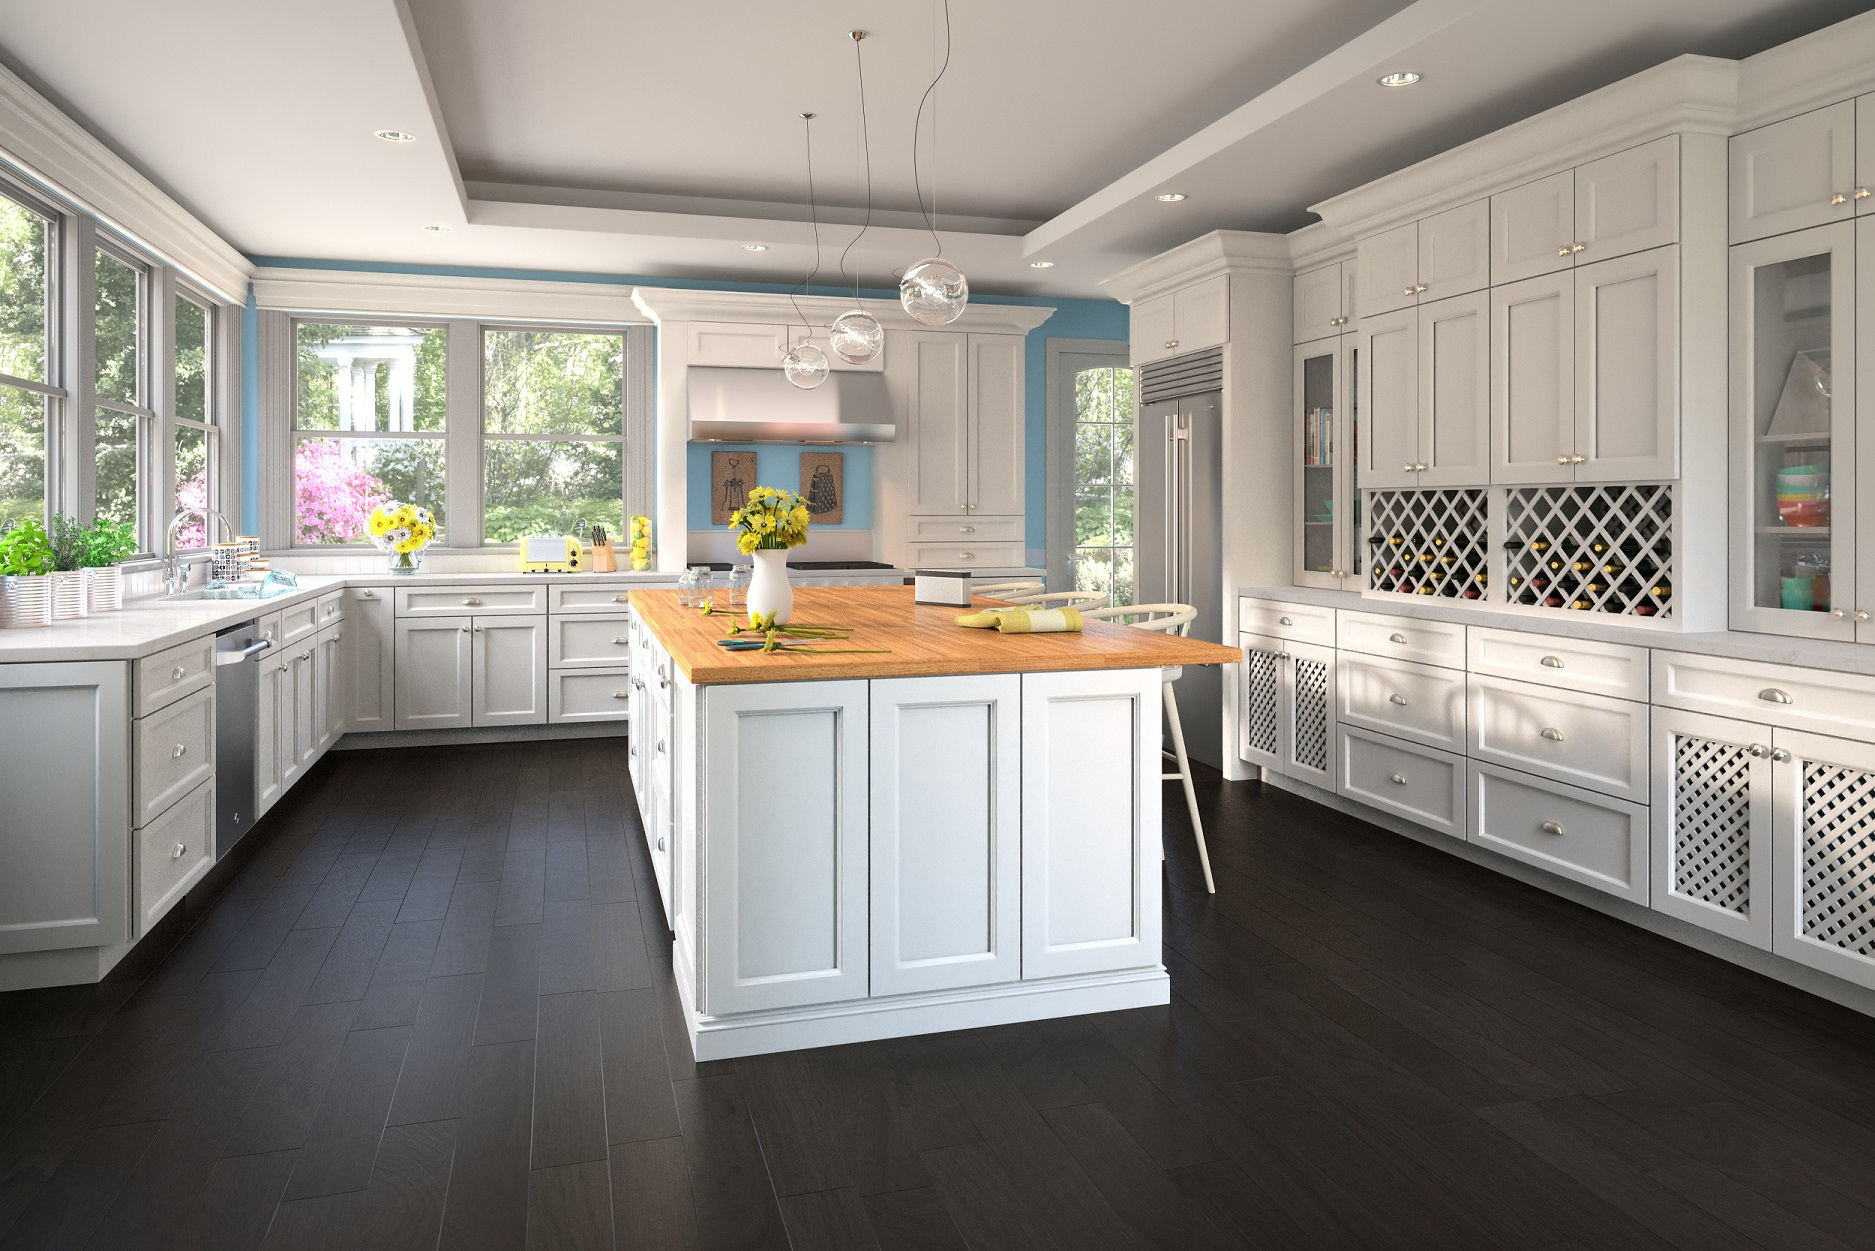 providence white ready to assemble kitchen cabinets kitchen cabinets. Black Bedroom Furniture Sets. Home Design Ideas